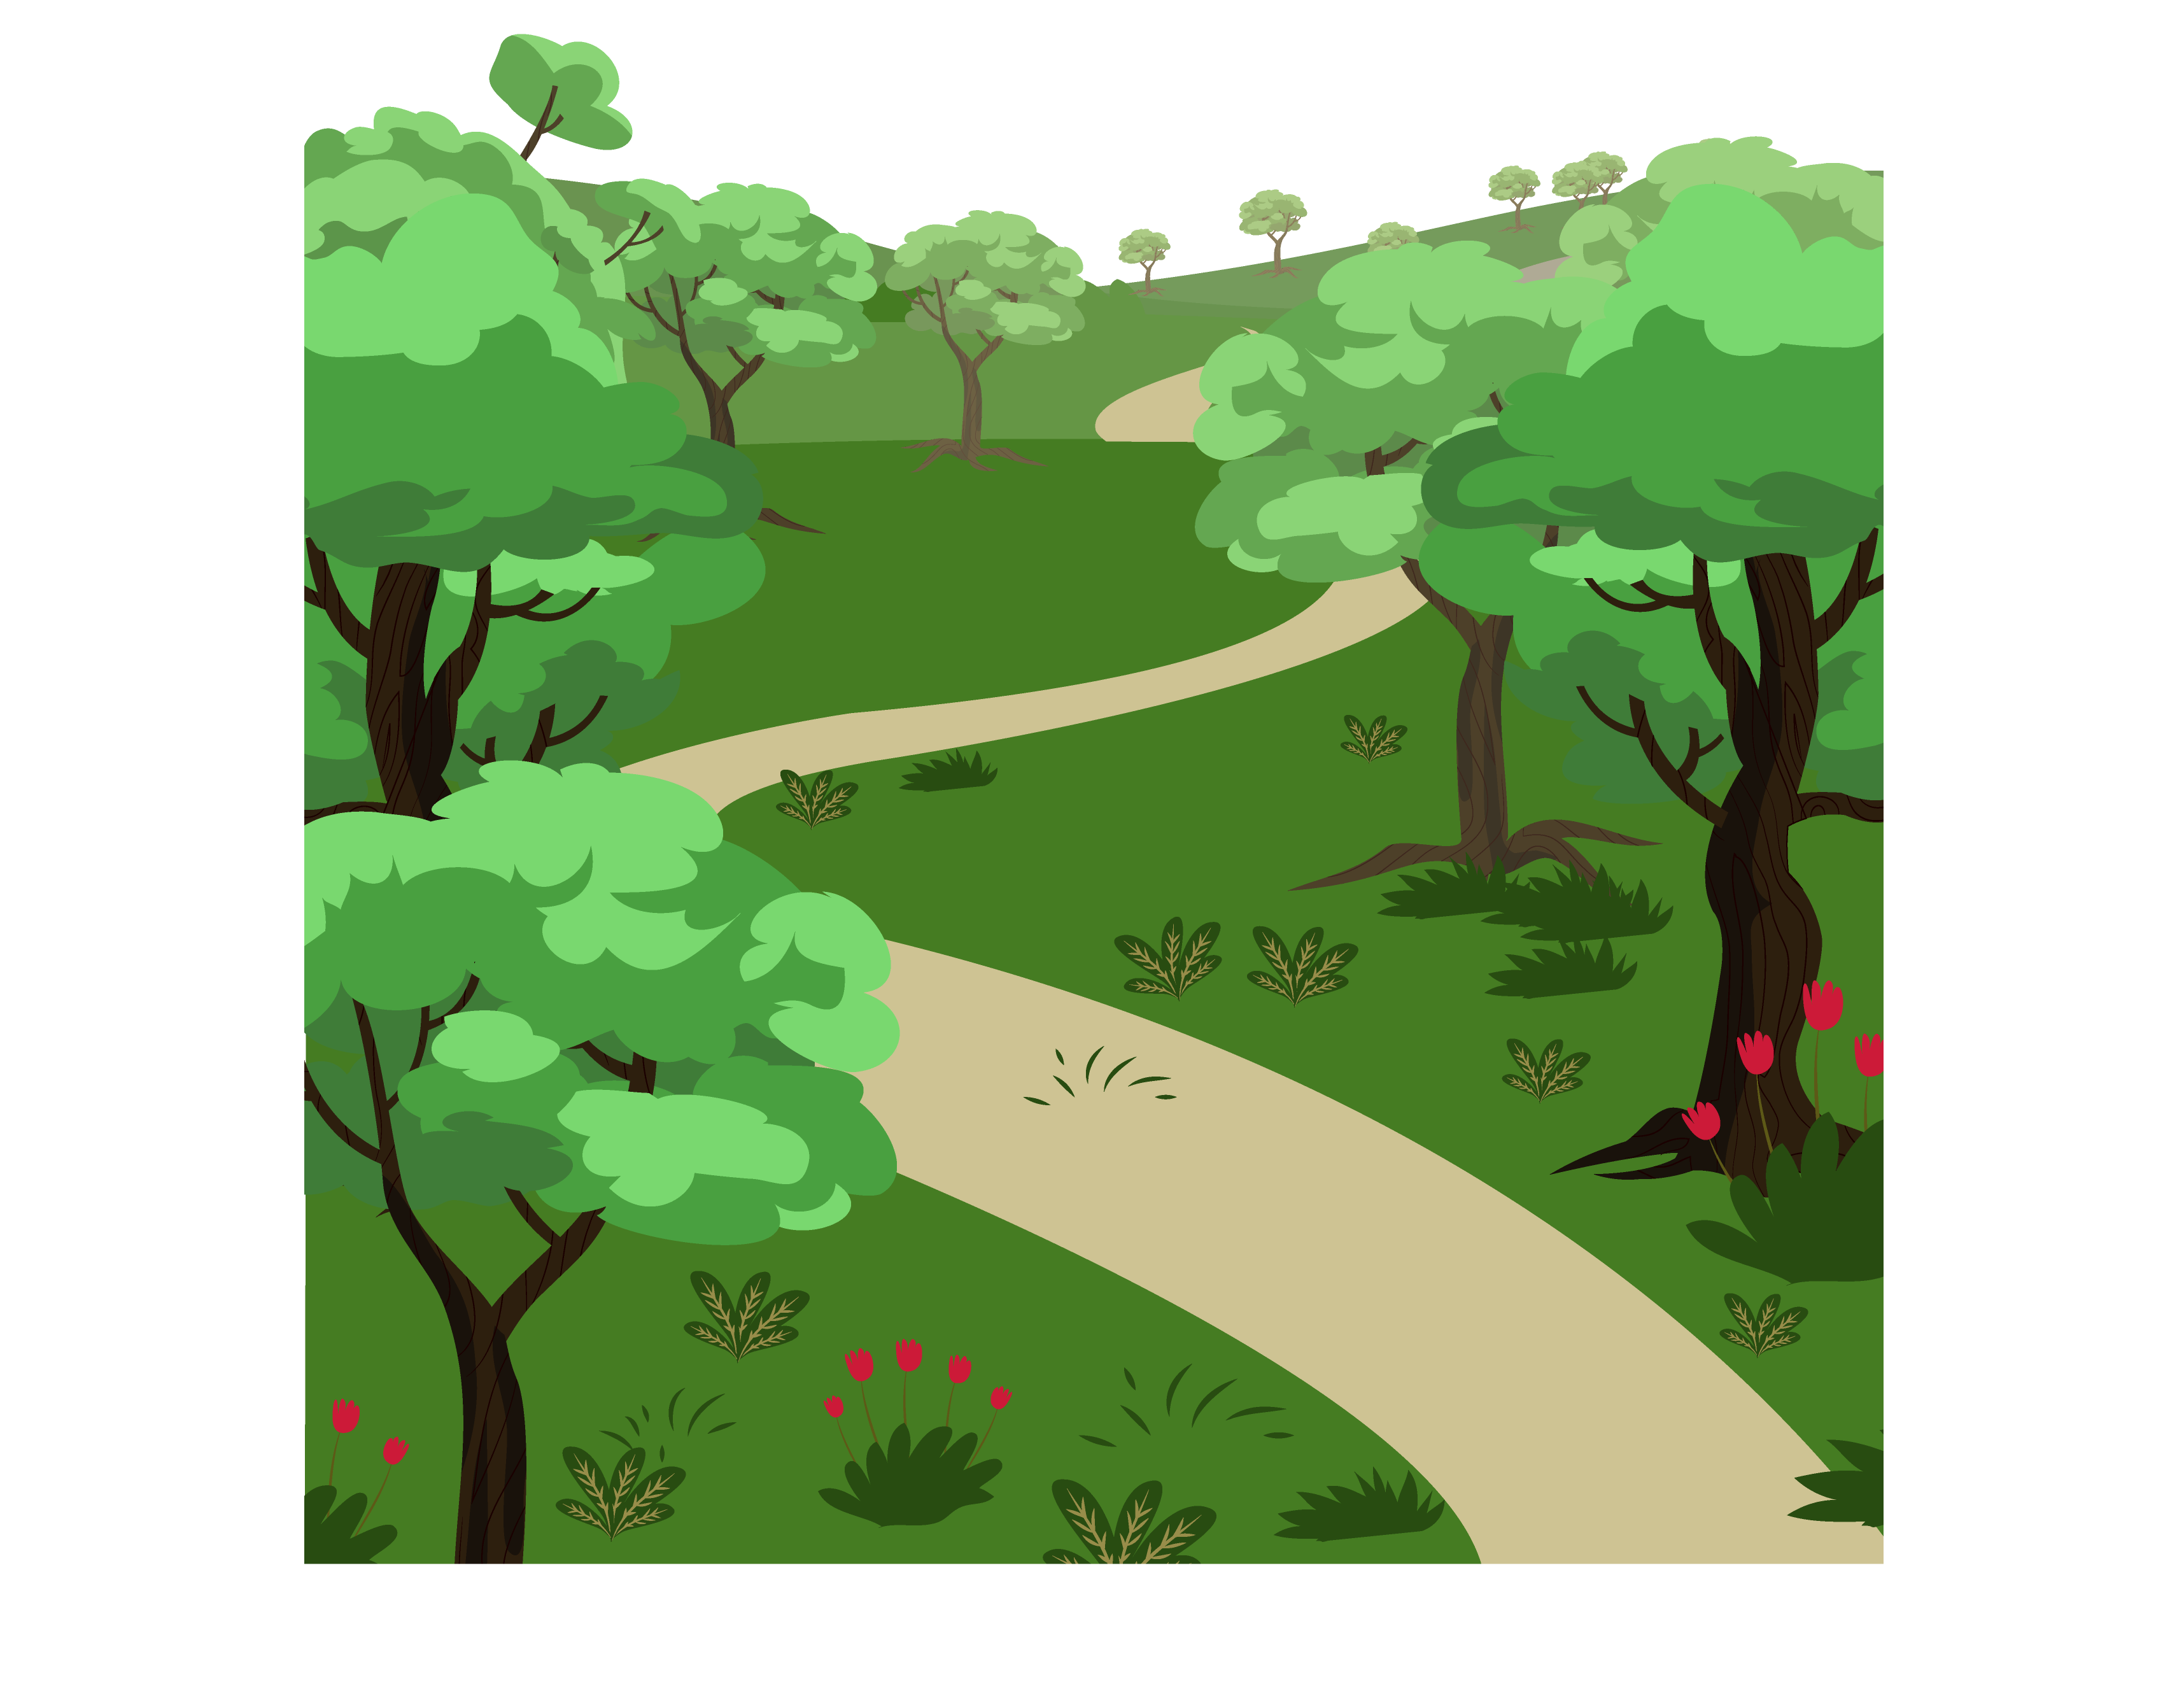 Intricate drawing landscape. Painting cartoon painted forest